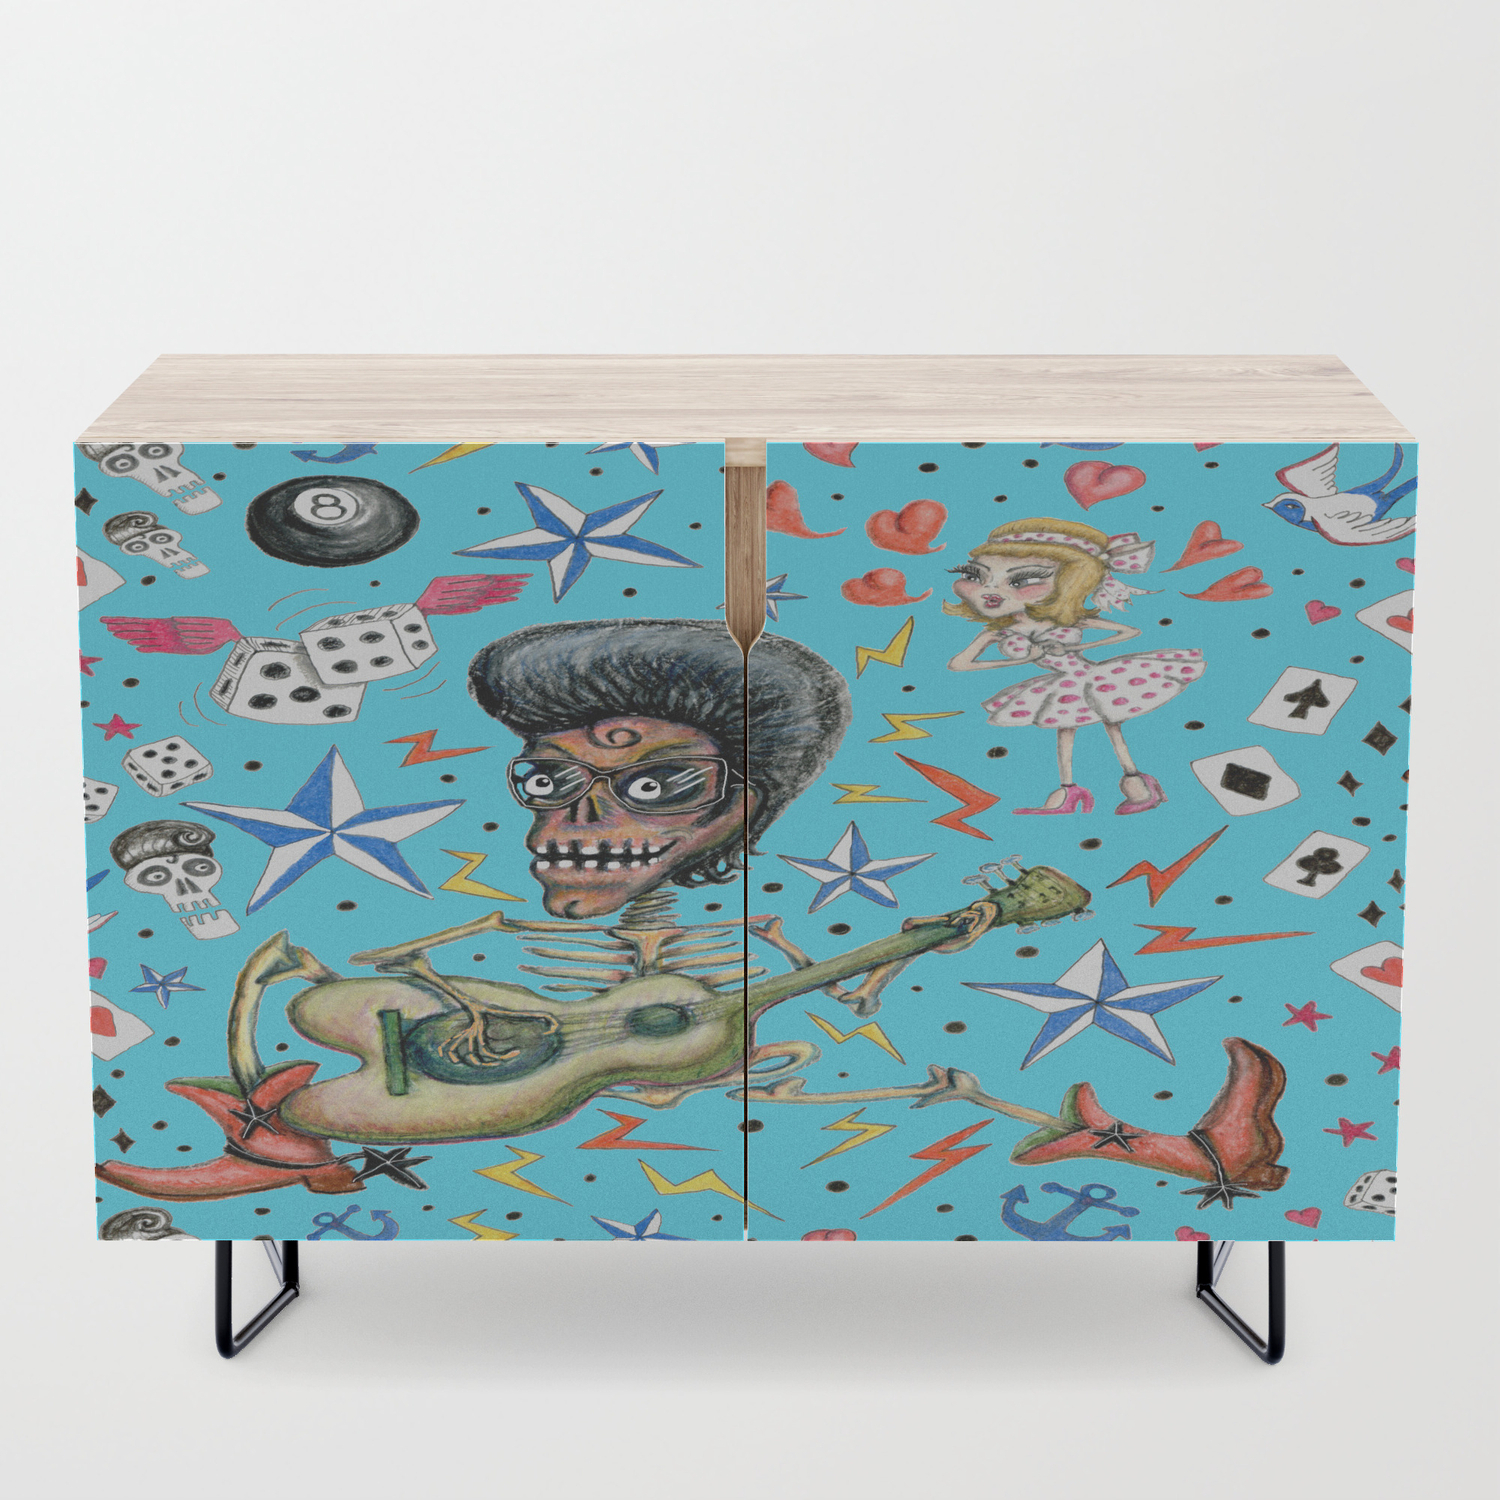 Rockabilly Bone Daddy Crush, Blue Turquoise Aqua Credenza Regarding Turquoise Skies Credenzas (Gallery 16 of 30)